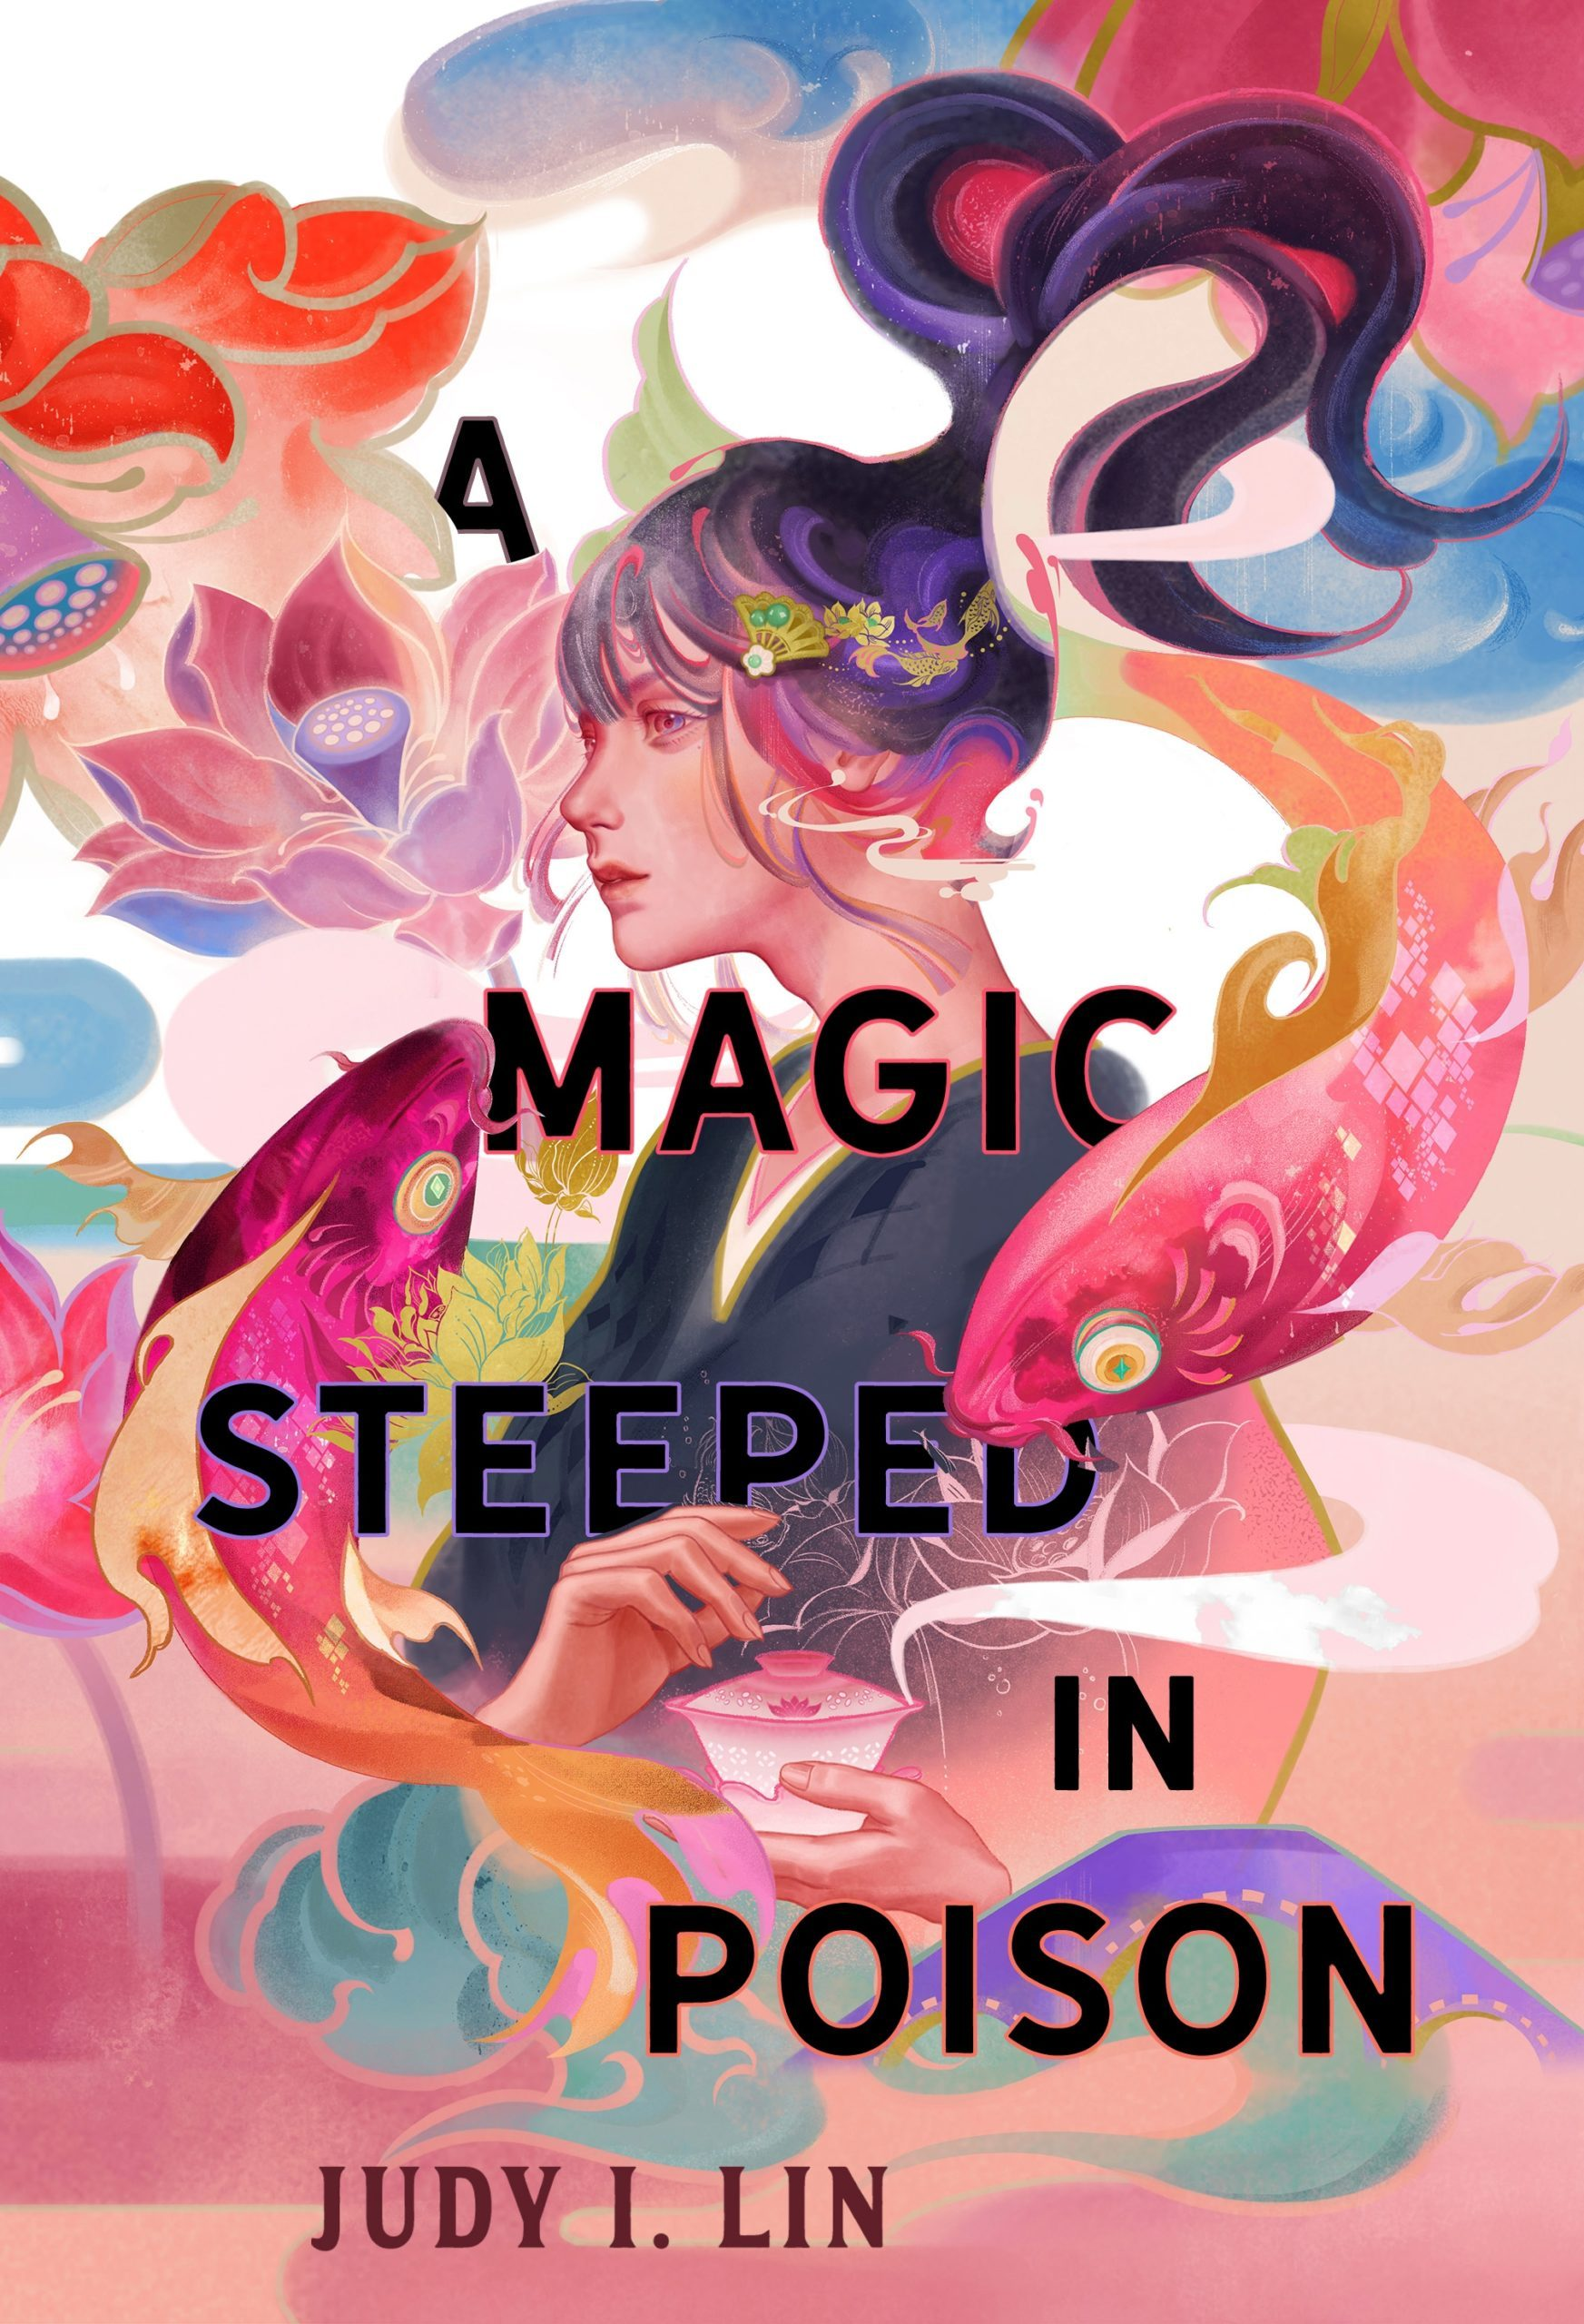 When Will A Magic Steeped In Poison (The Book Of Tea 1) By Judy I. Lin Come Out? 2022 Debut Releases